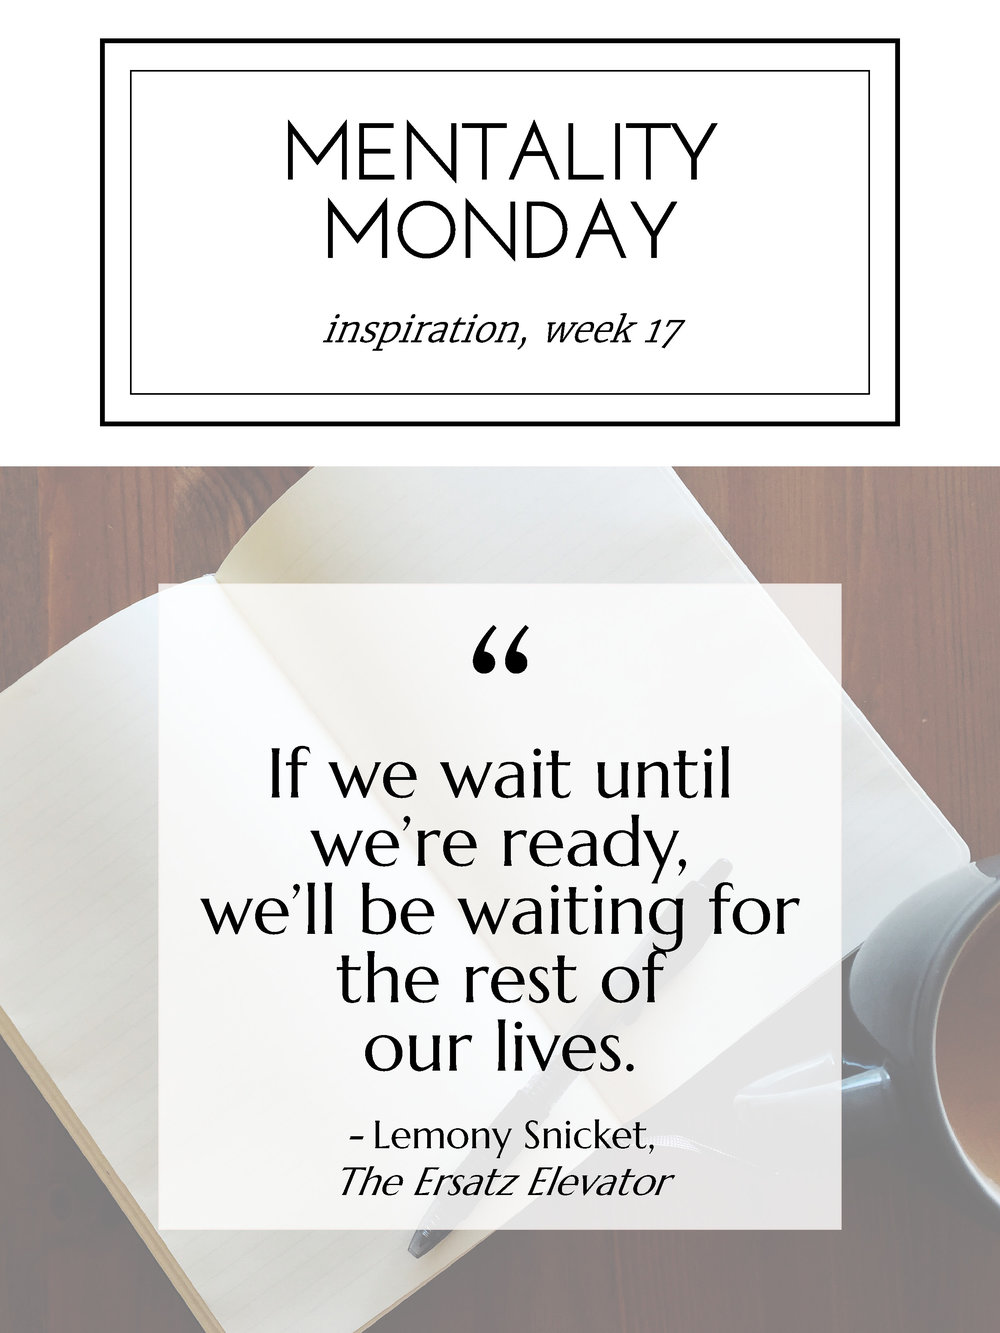 """Mentality Monday """"If we wait until we're ready, we'll be waiting for the rest of our lives."""" - Lemony Snicket, The Ersatz Elevator"""